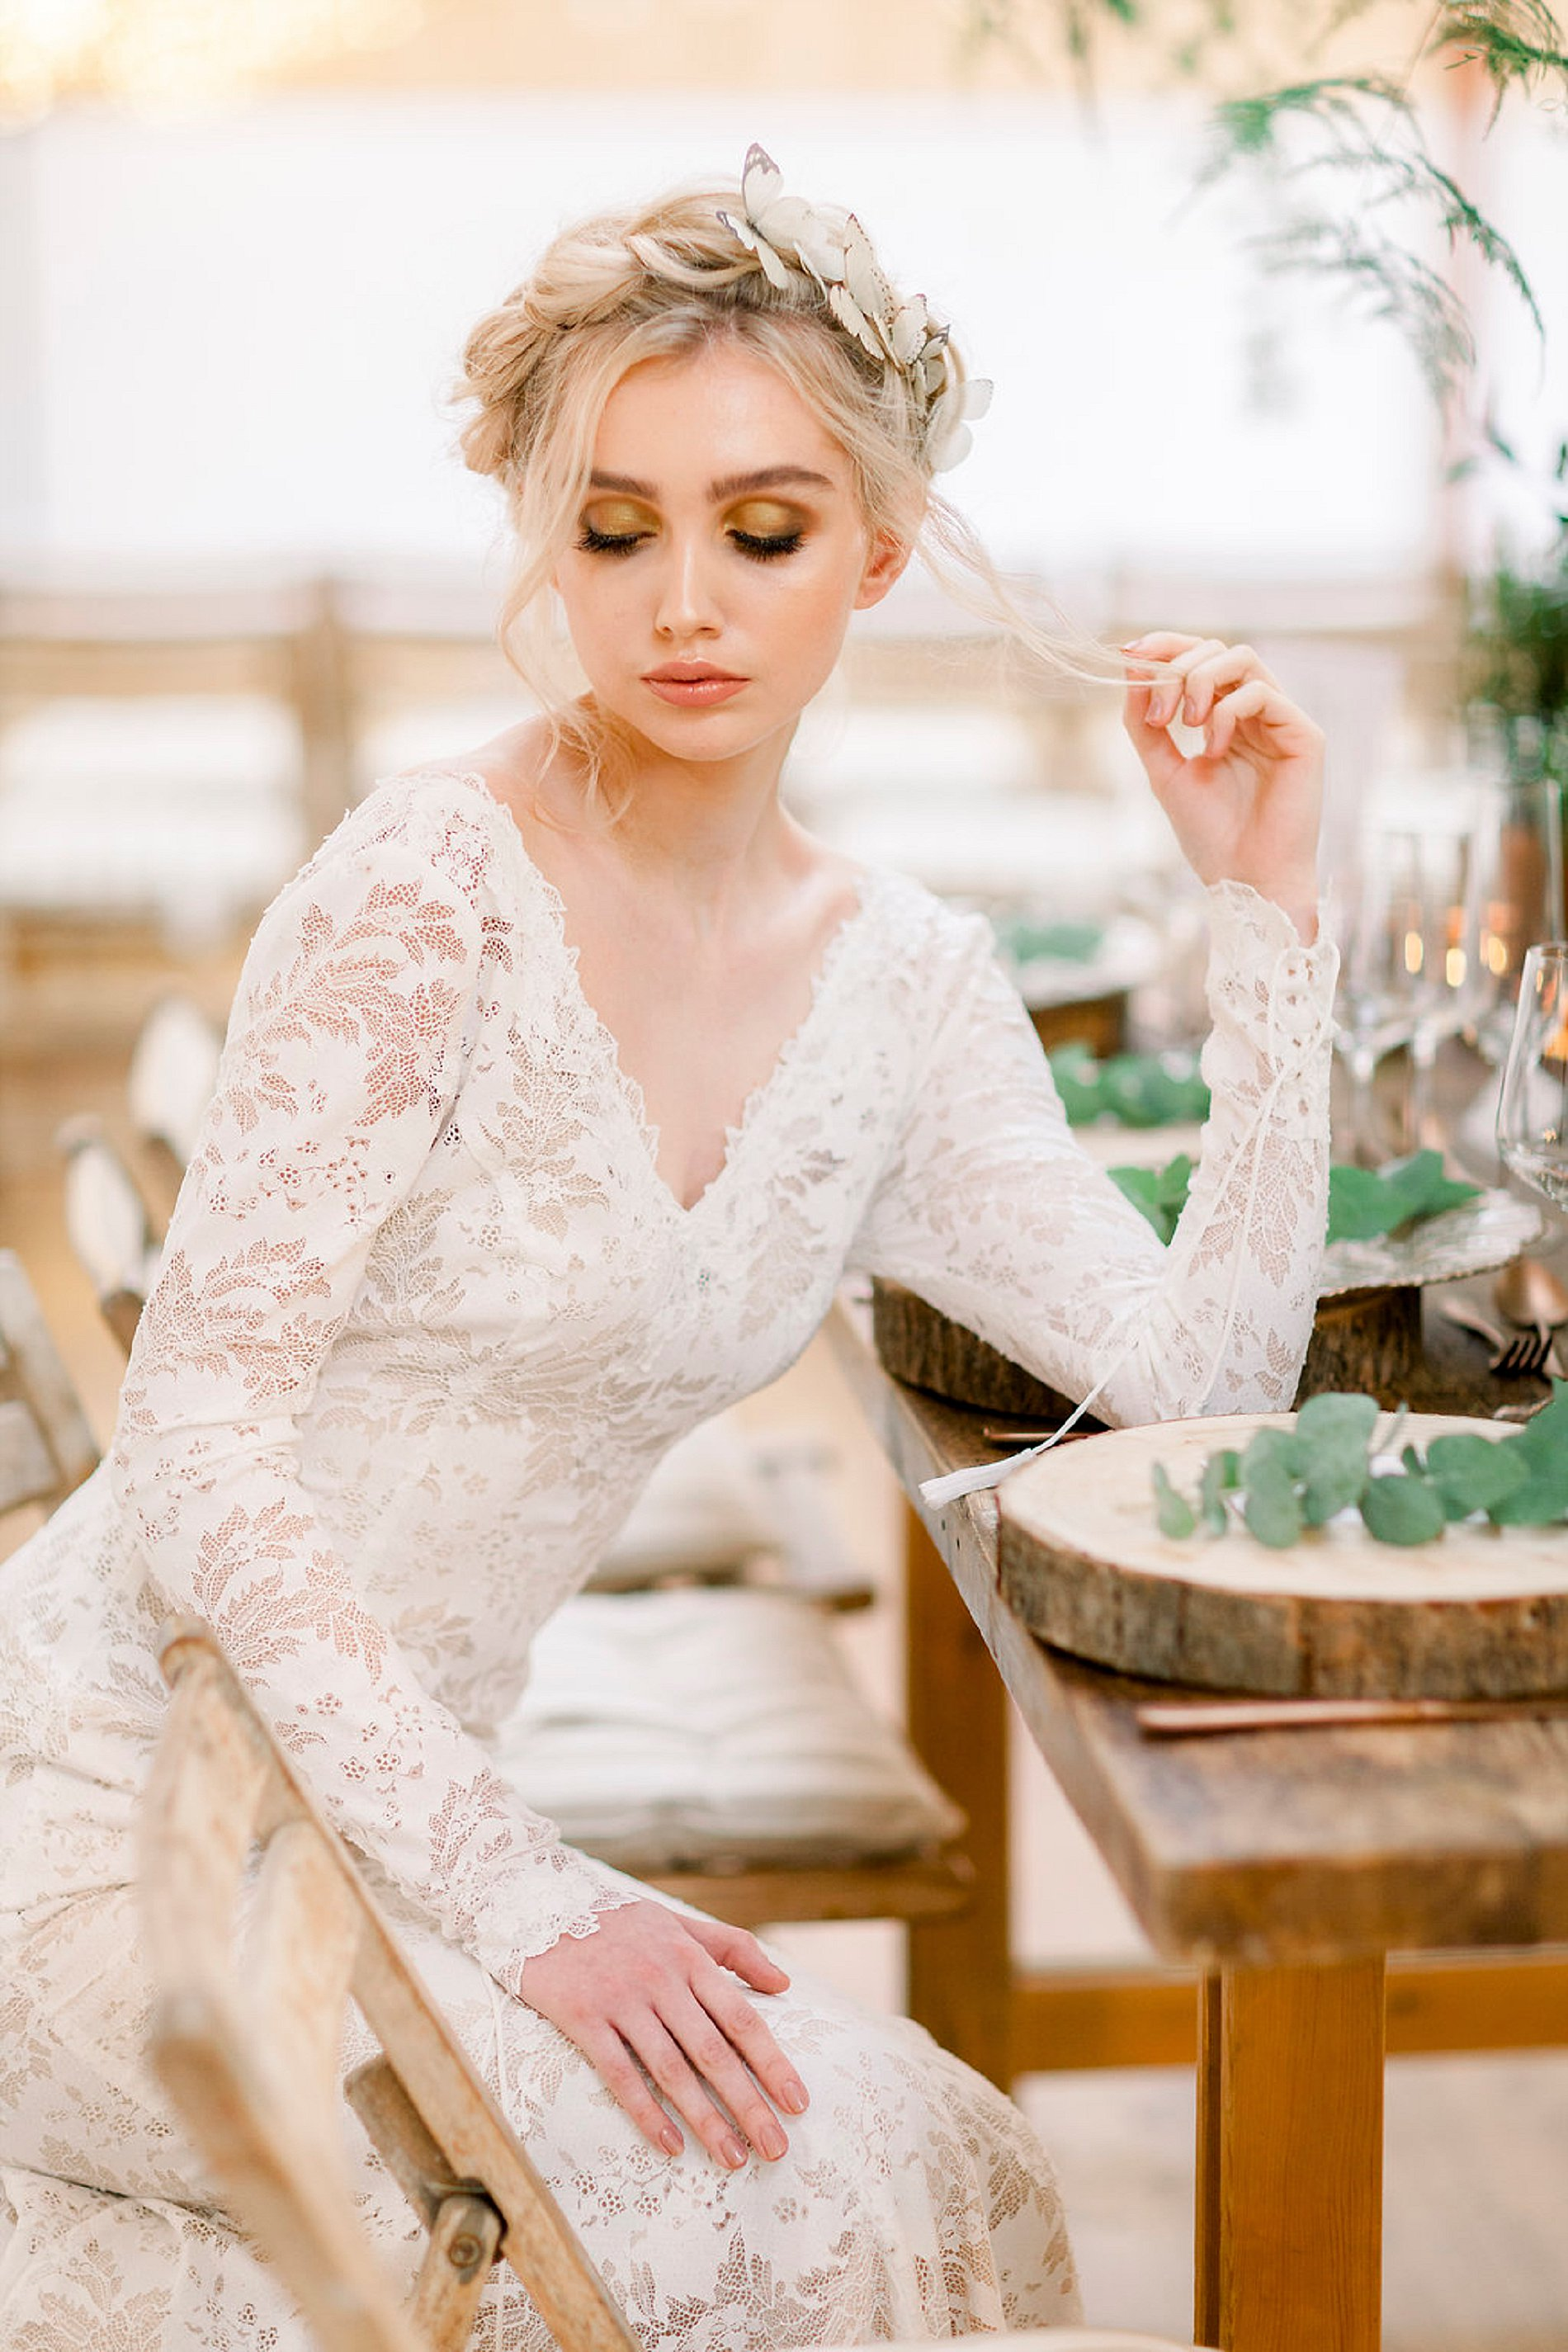 Super Natural Creative Bridal Editorial (c) Jo Bradbury (21)